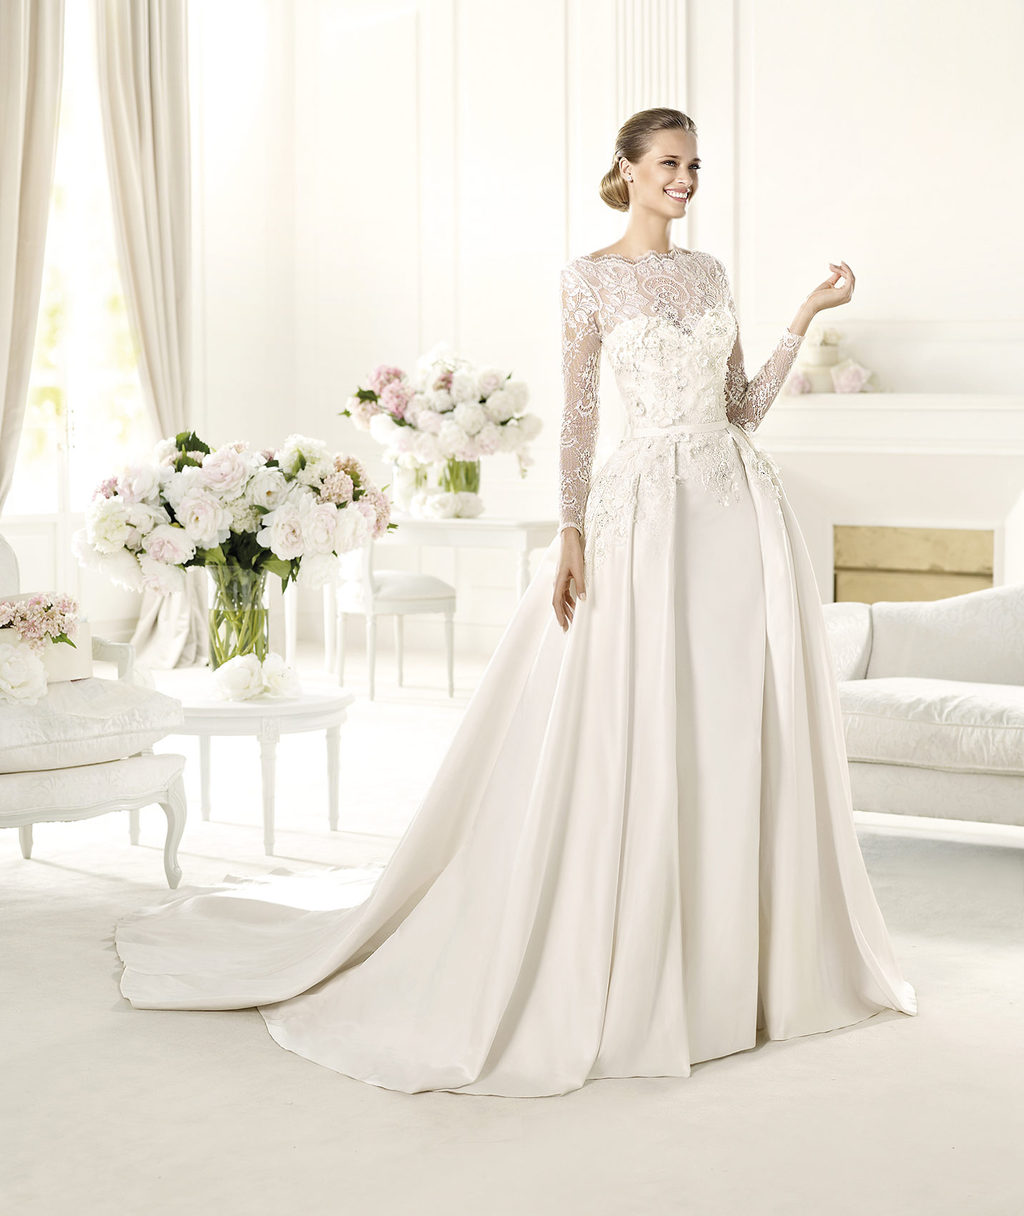 Elie-saab-wedding-dress-2014-pronovias-bridal-monet.full